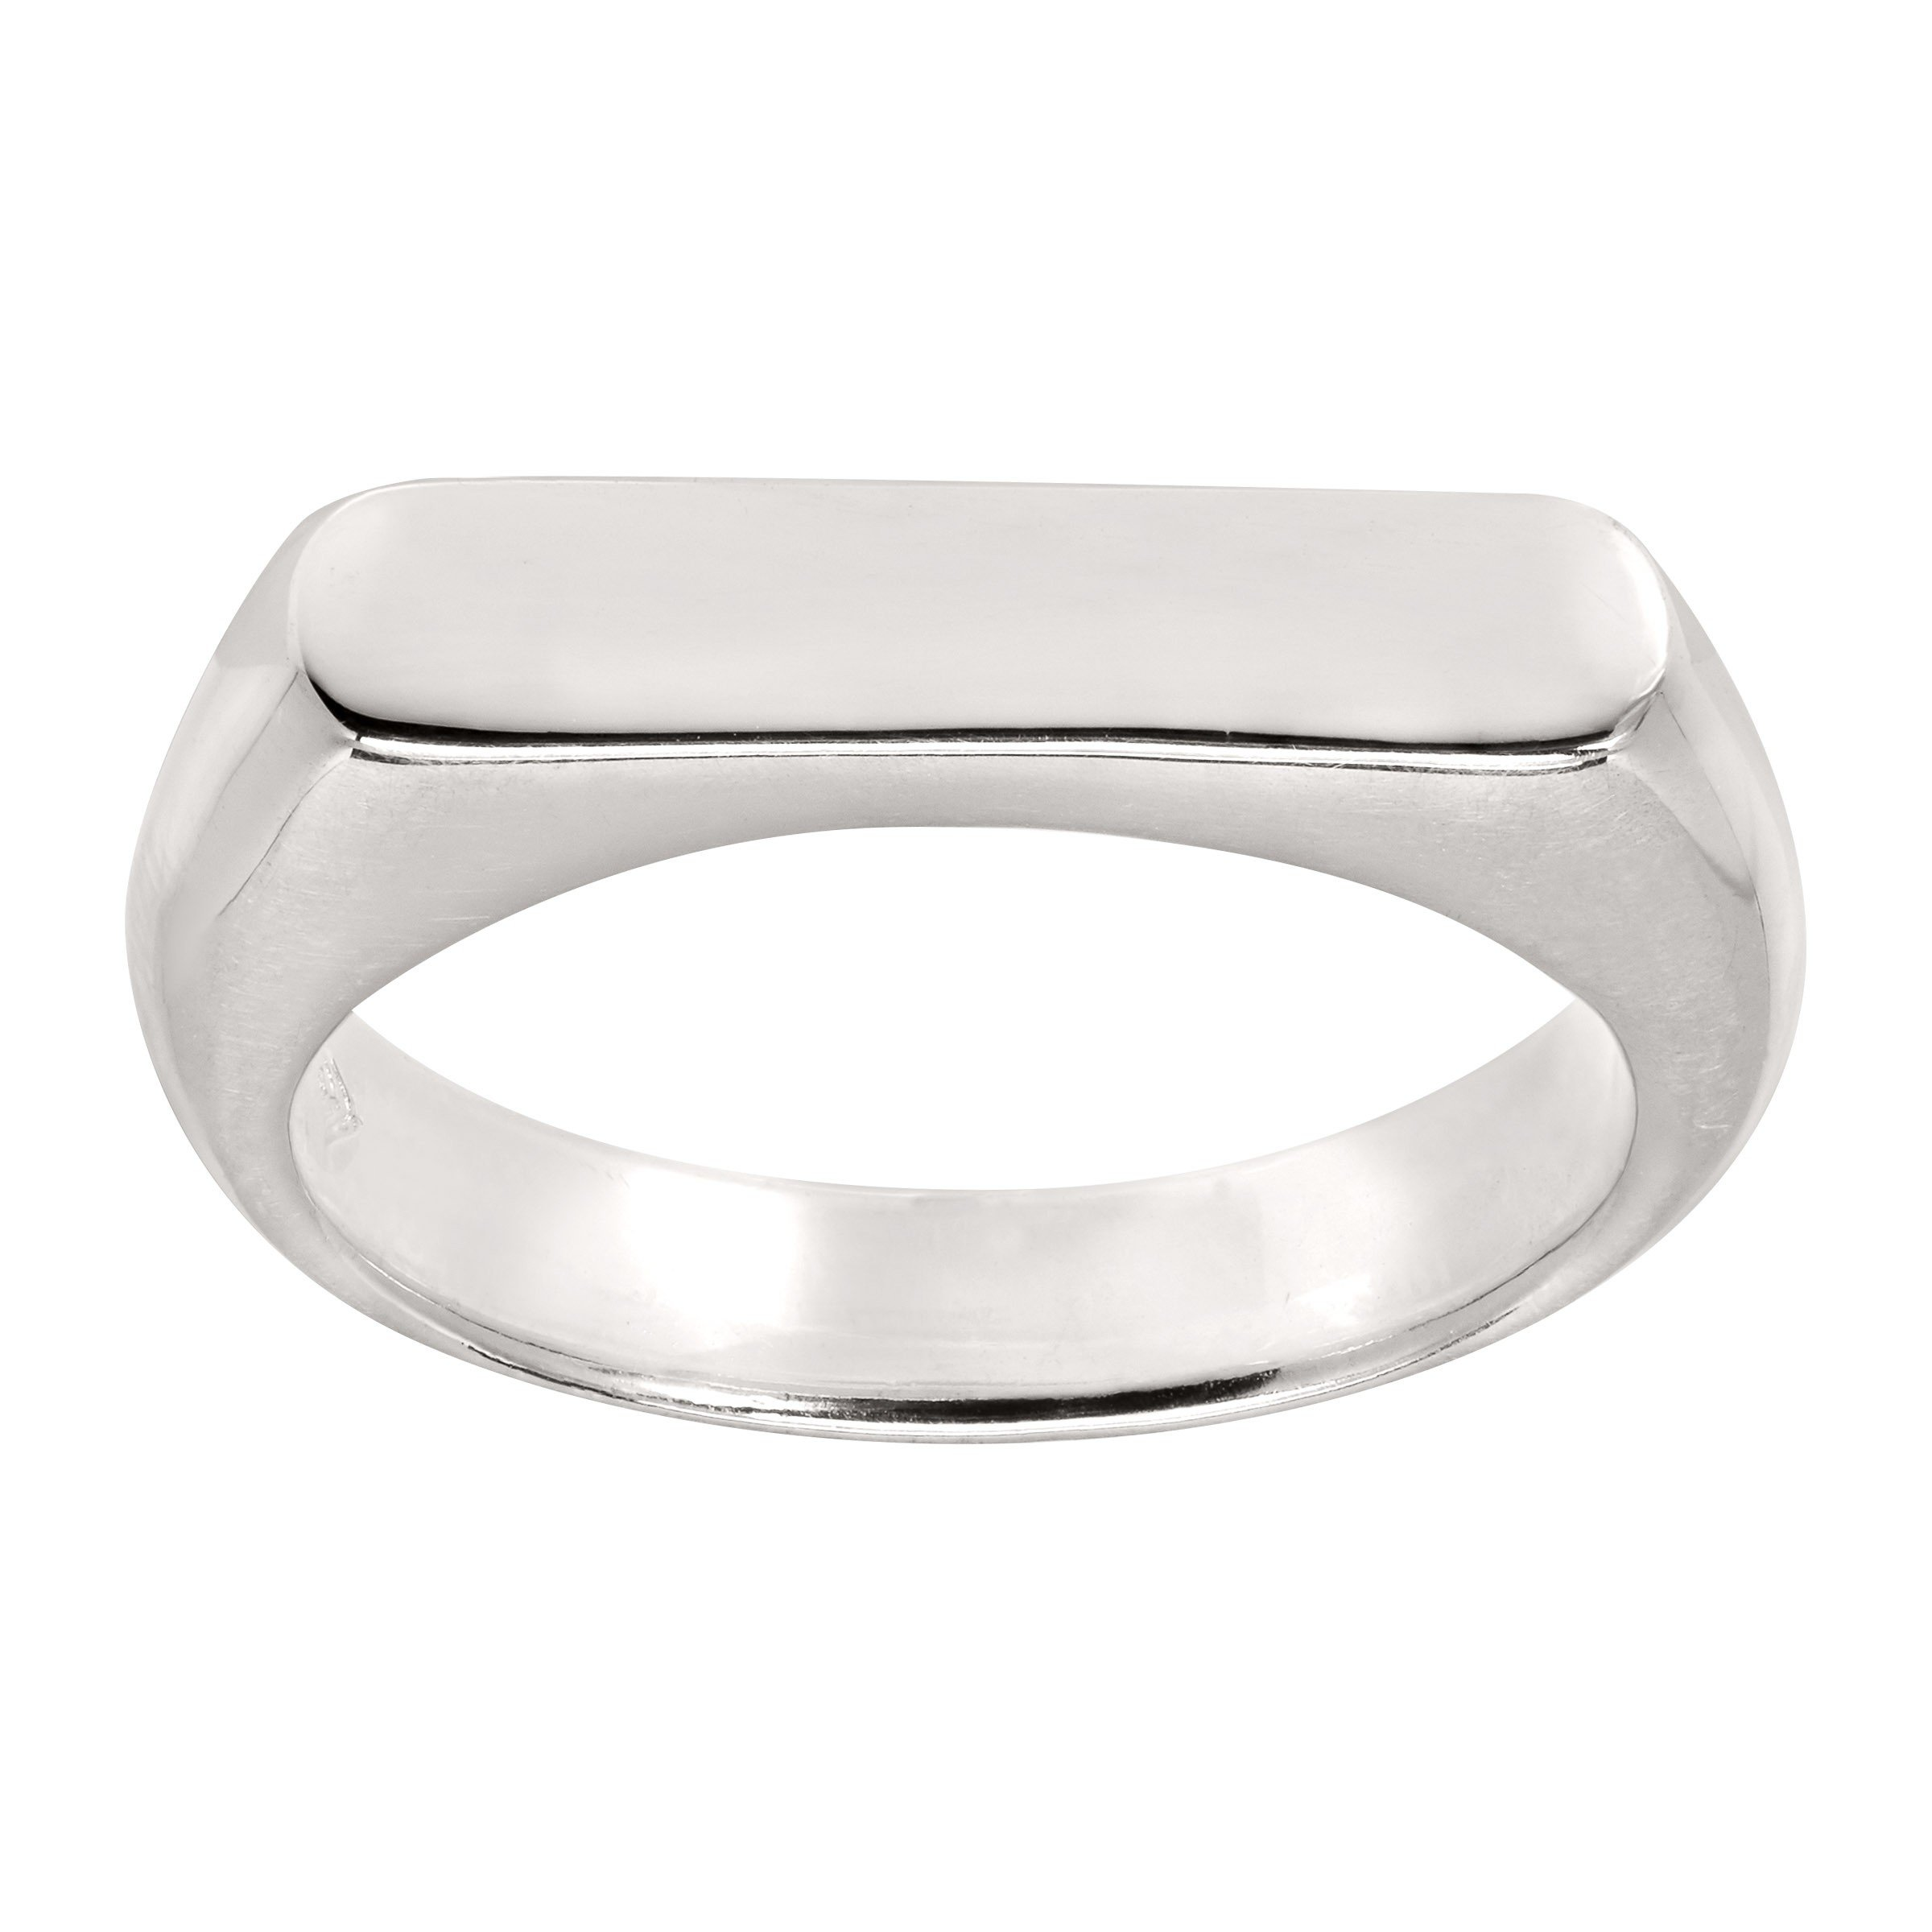 Silpada 'Big Idea' Sterling Silver Ring, Size 7 by Silpada